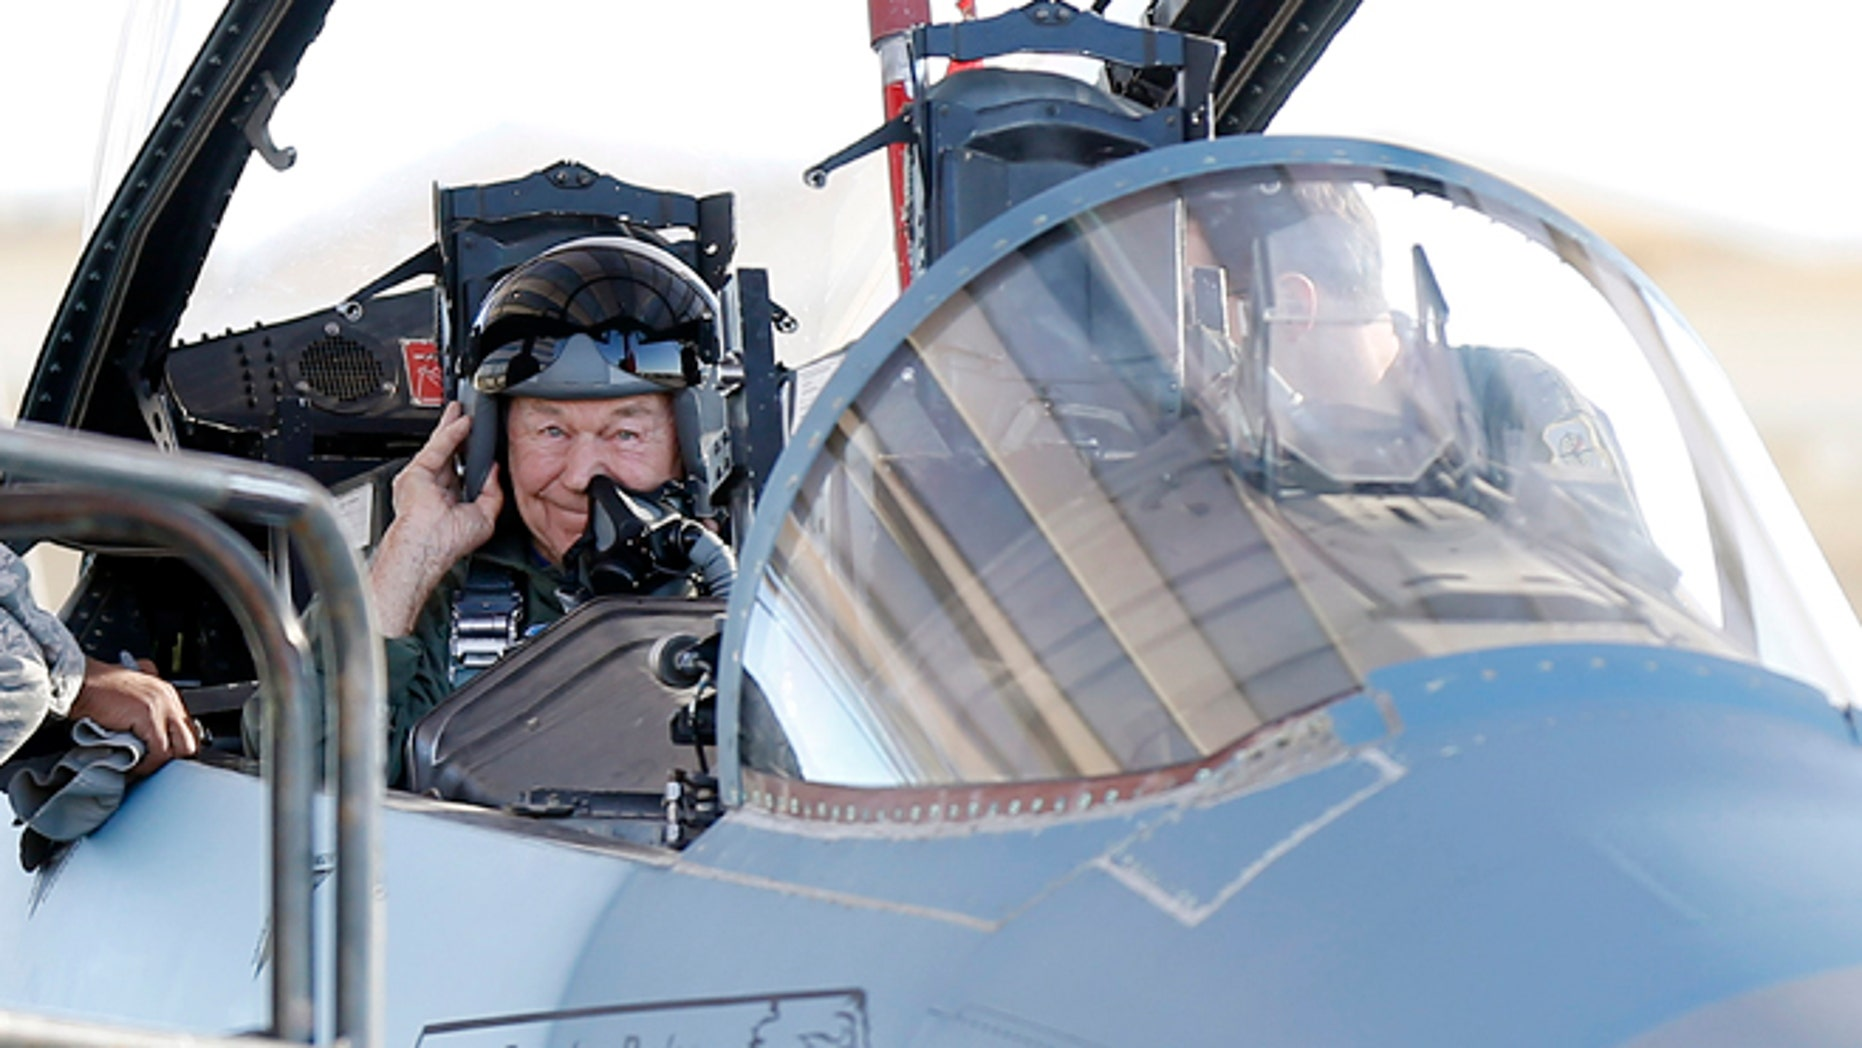 Oct. 14: Retired Air Force Brig. Gen. Charles Yeager straps into an F-15D for a re-enactment flight commemorating his breaking of the sound barrier 65 years ago at Nellis Air Force Base, Nev.